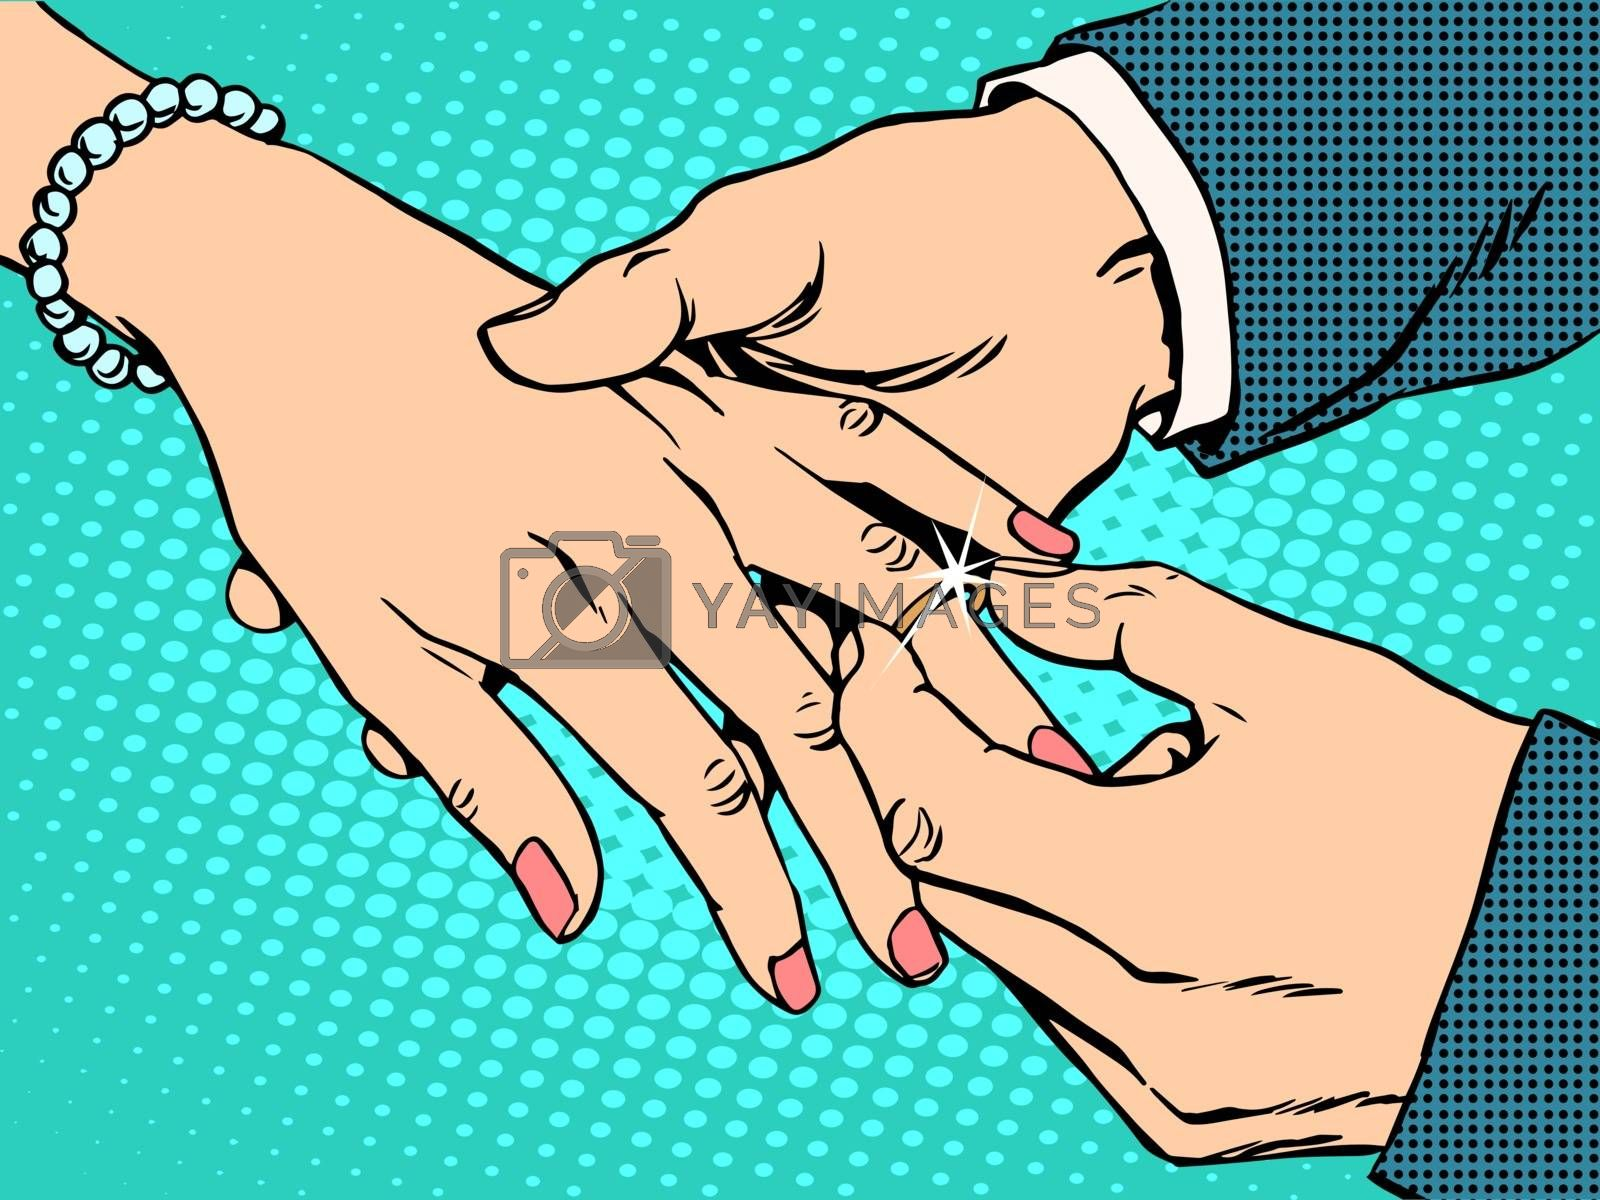 betrothal wedding bride groom gold ring pop art retro style. Man woman and the wedding ring. Jewelry. Love and romance